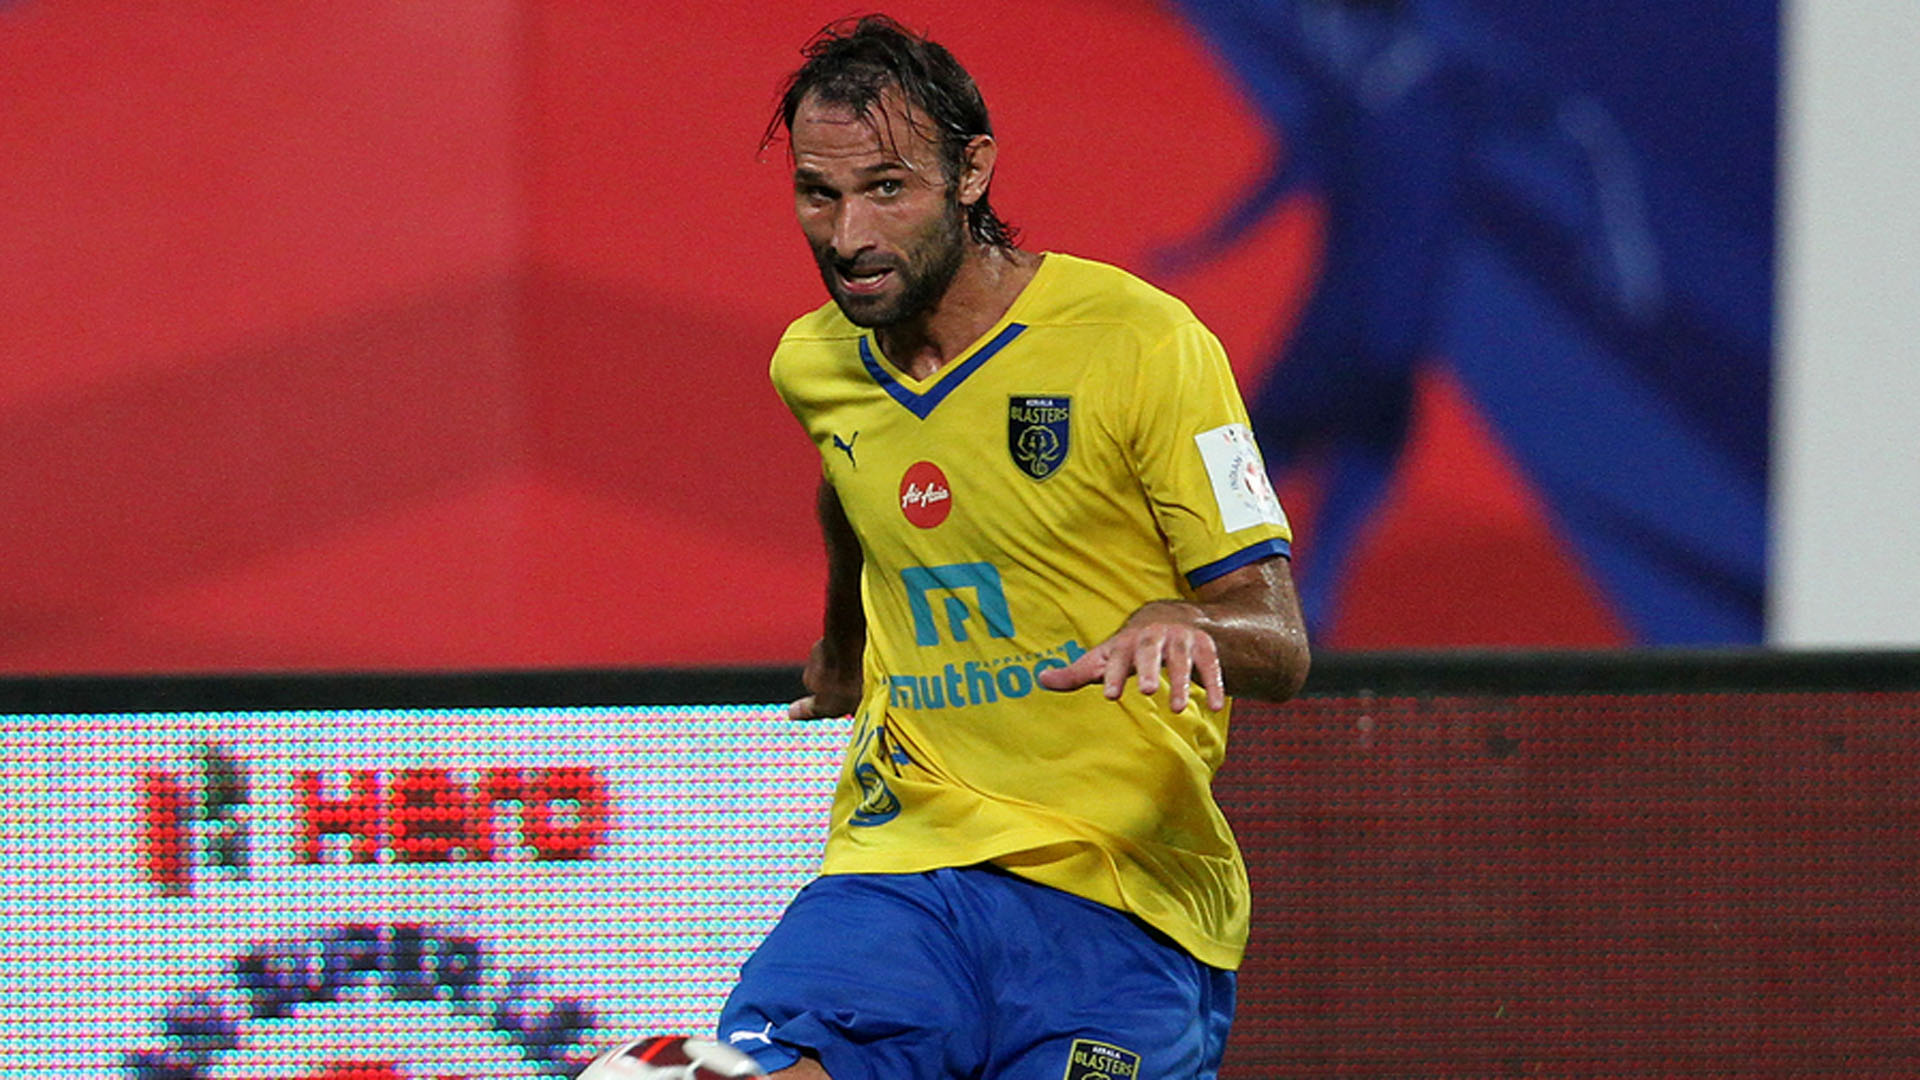 Cedric Hengbart of Kerala Blasters FC in action during ISL match ...